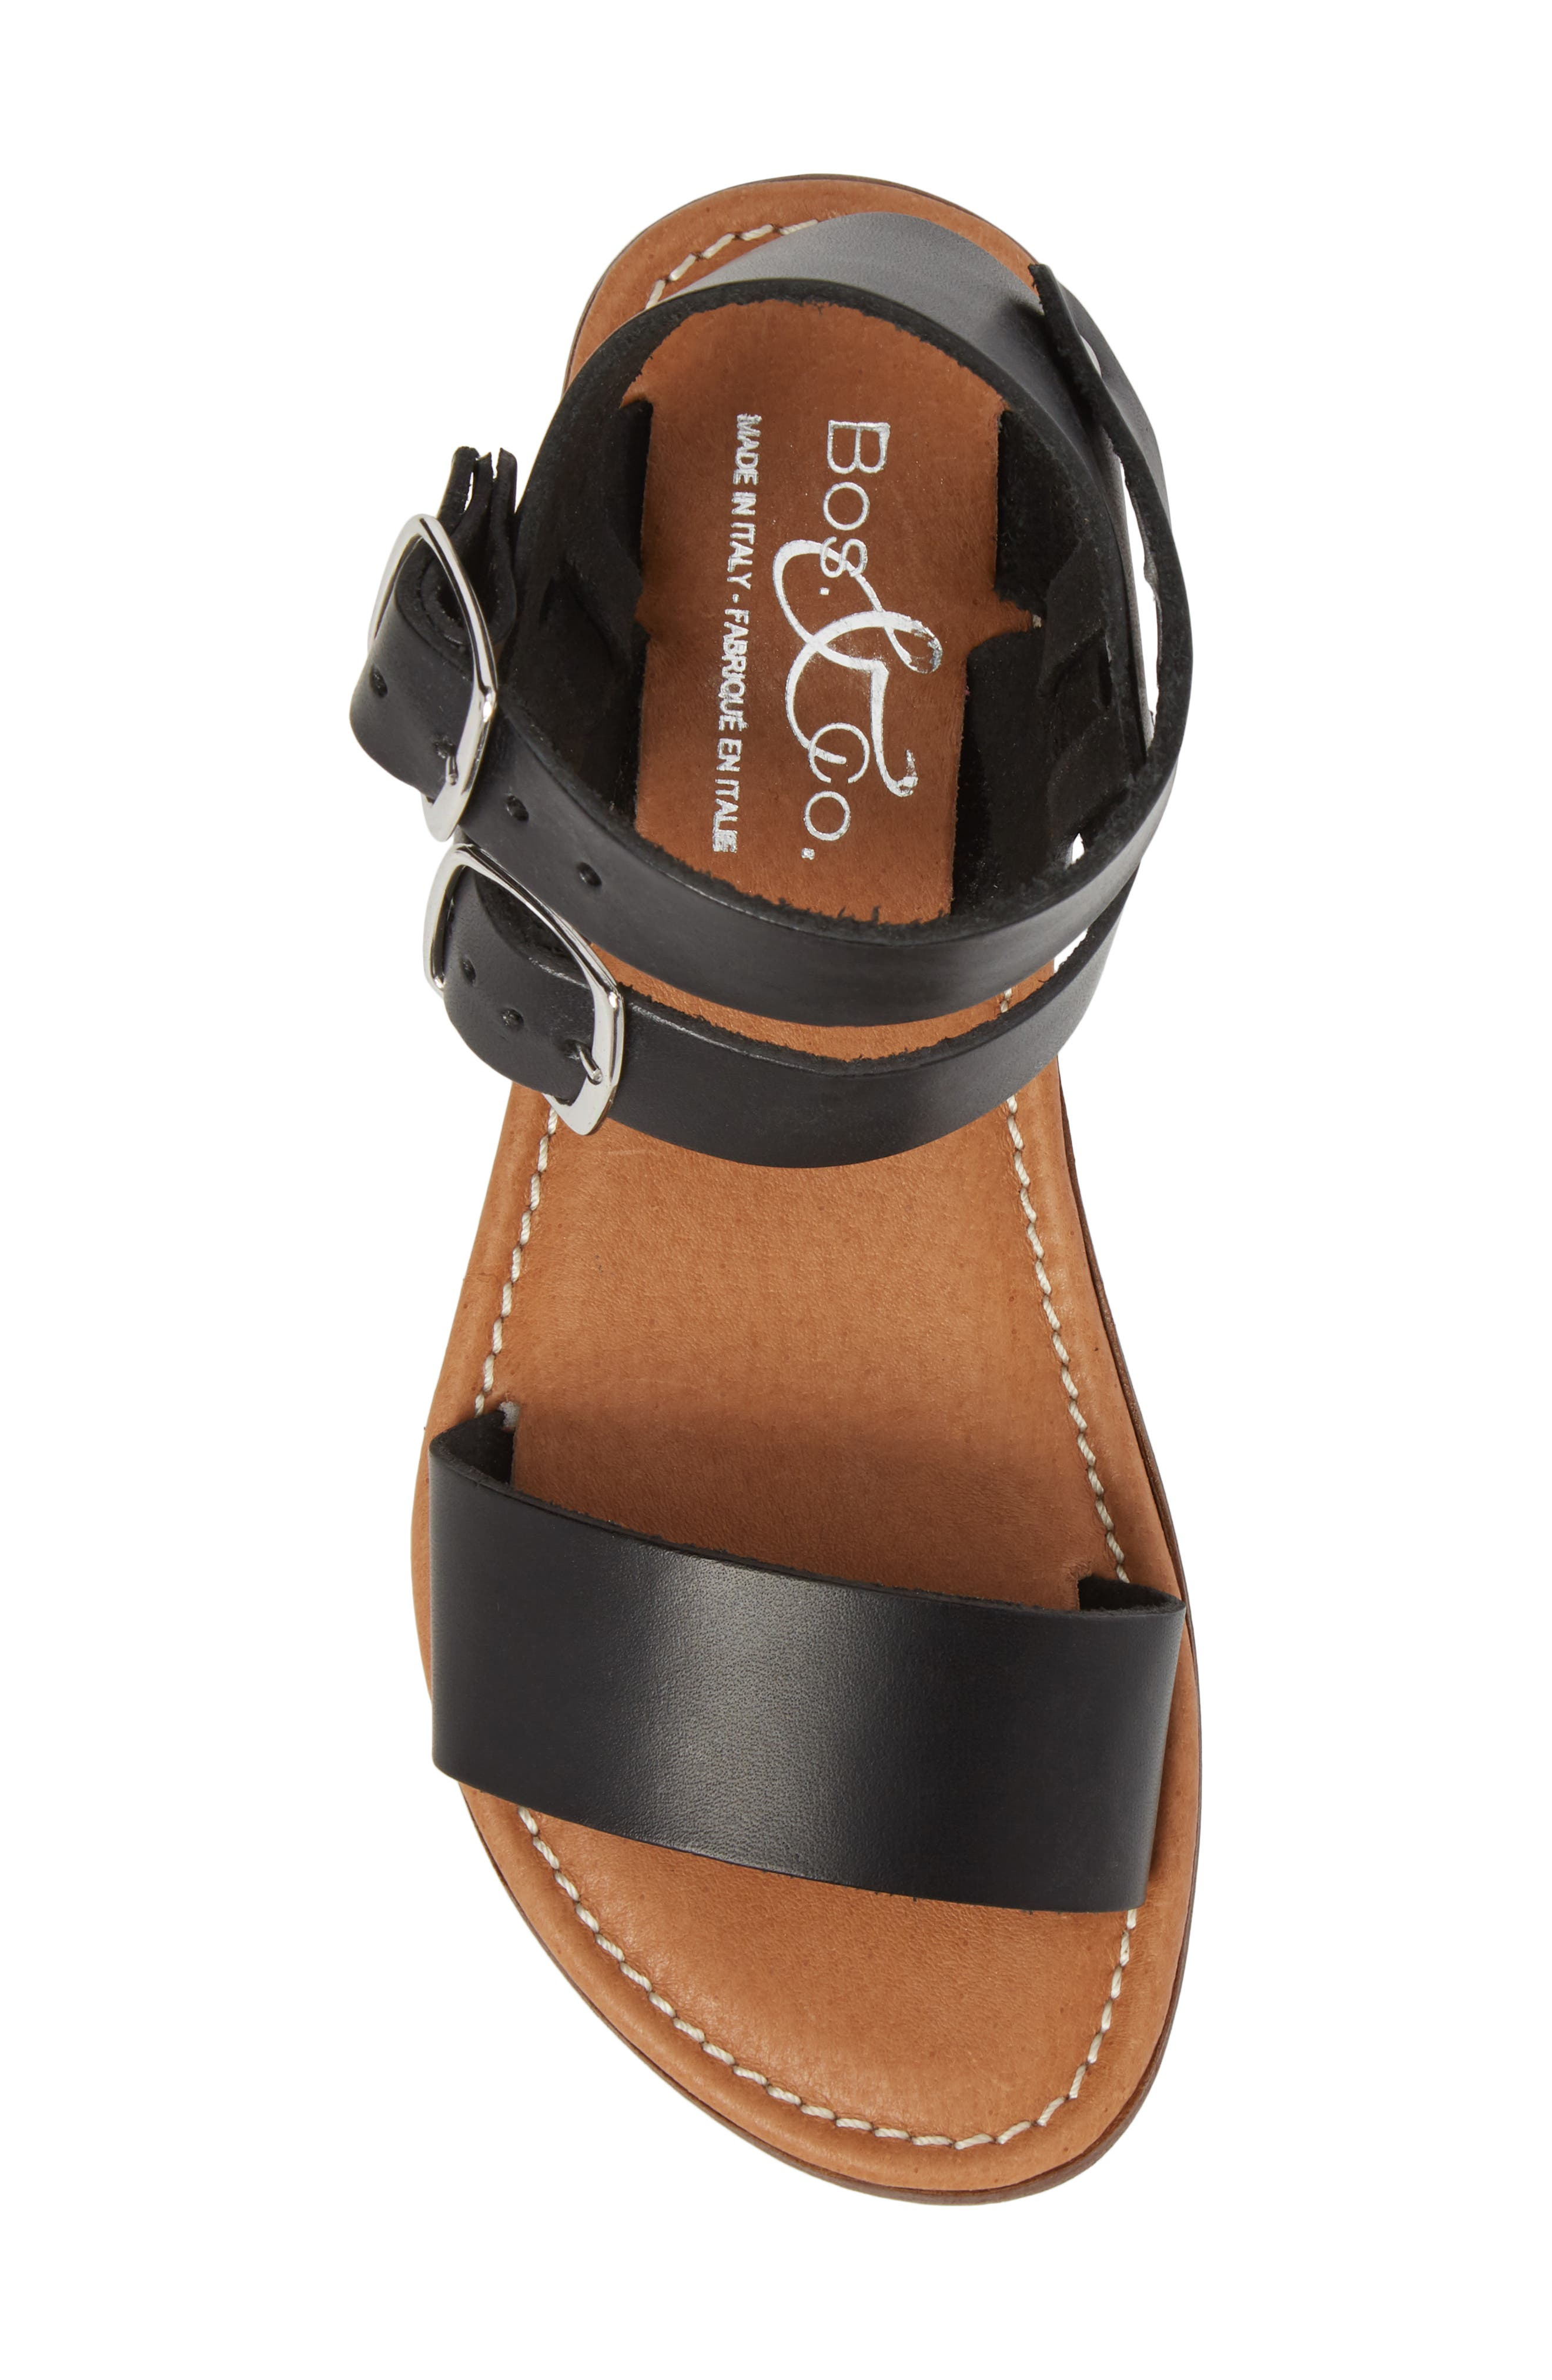 Ida Mid Top Sandal,                             Alternate thumbnail 5, color,                             BLACK VACCHETTA LEATHER